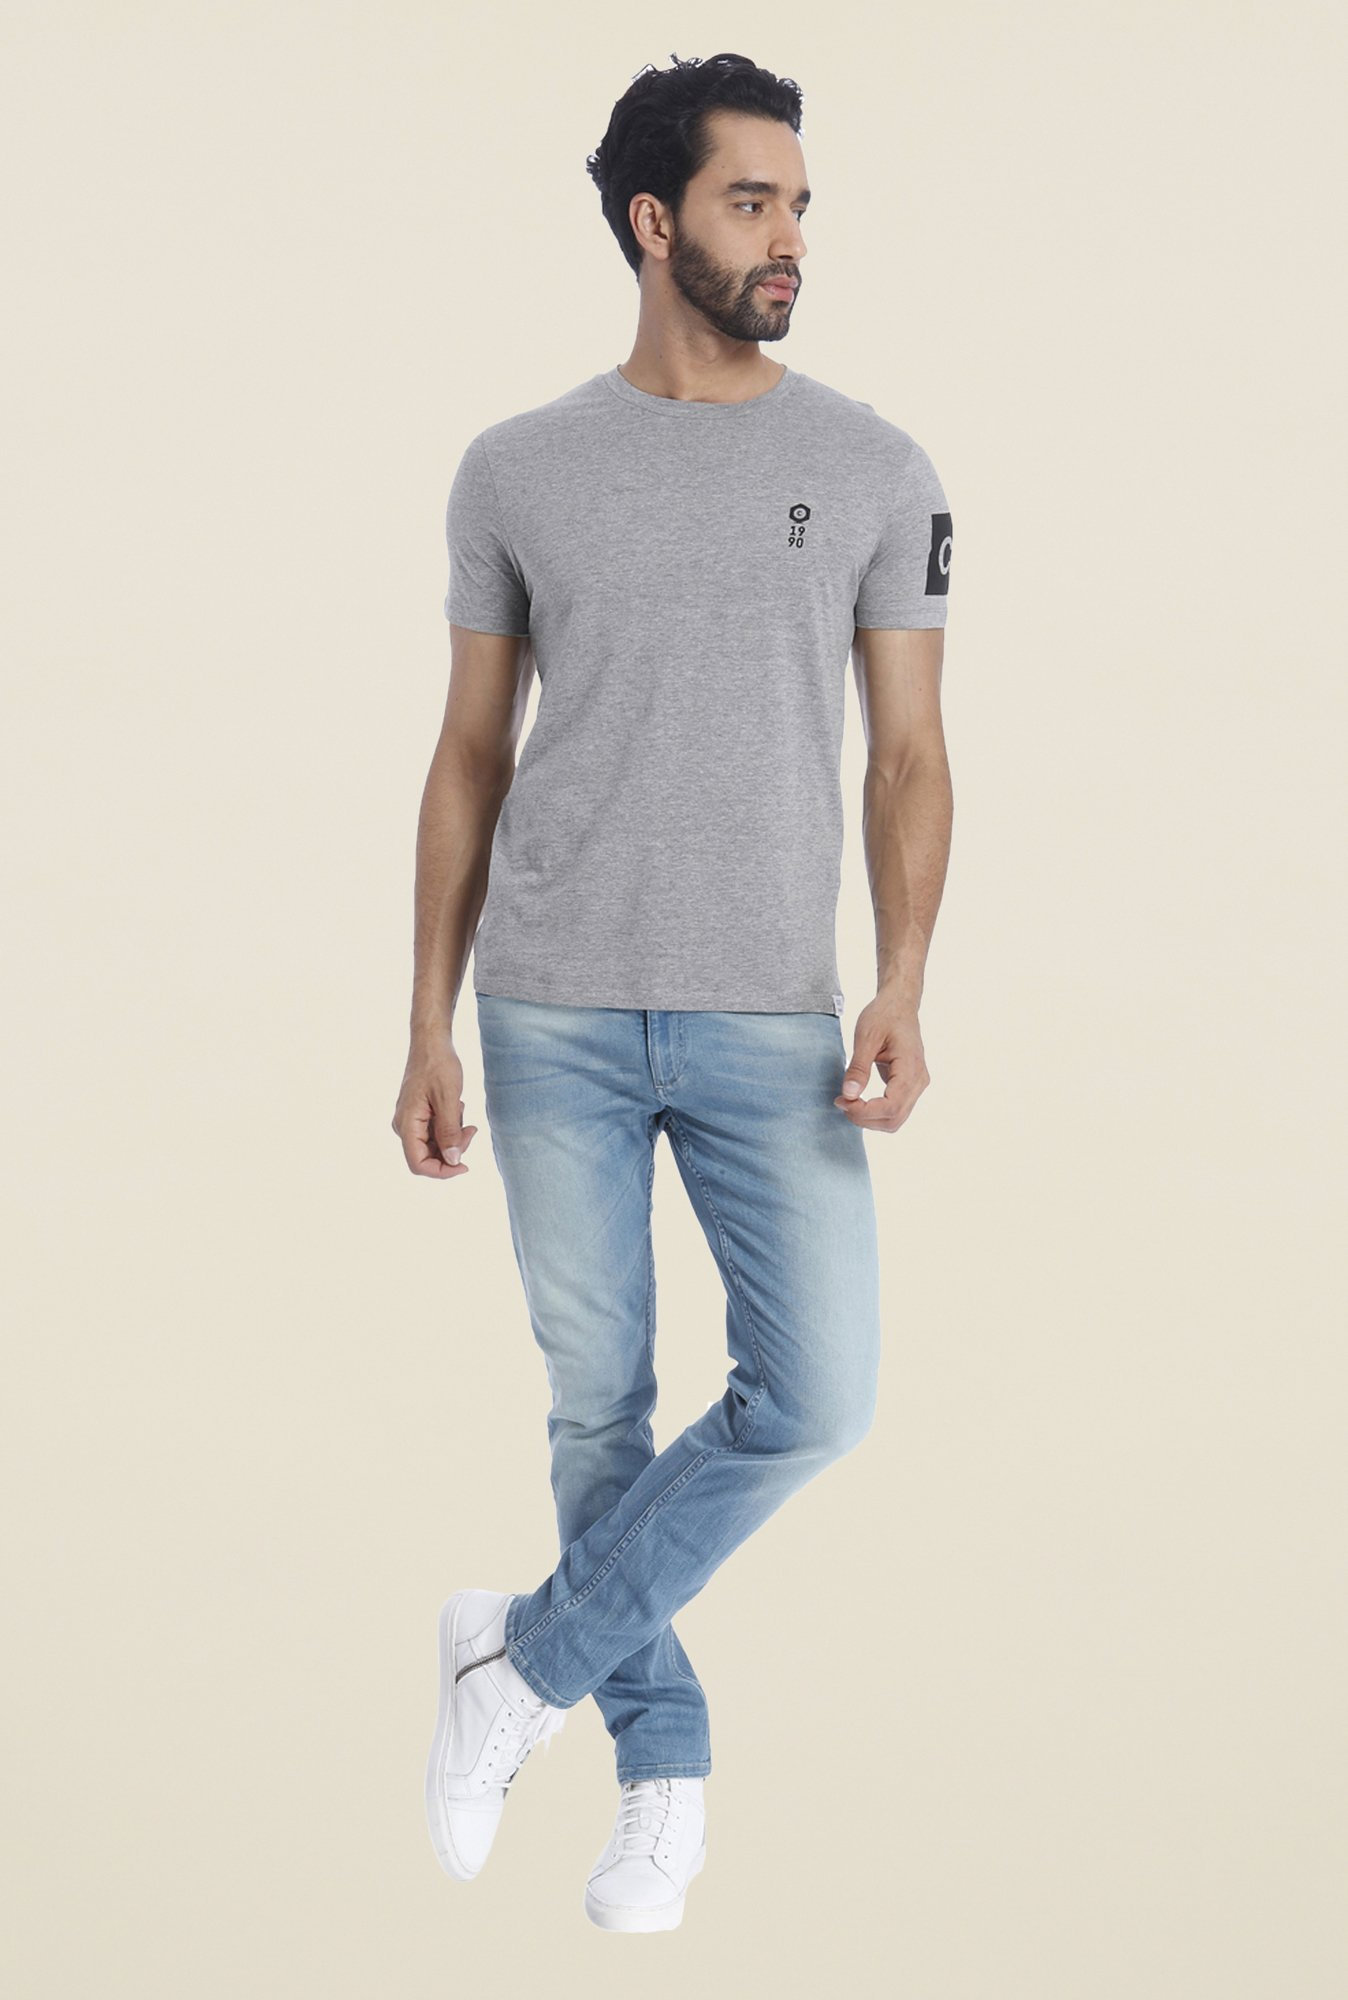 Jack & Jones Grey Solid Crew T Shirt